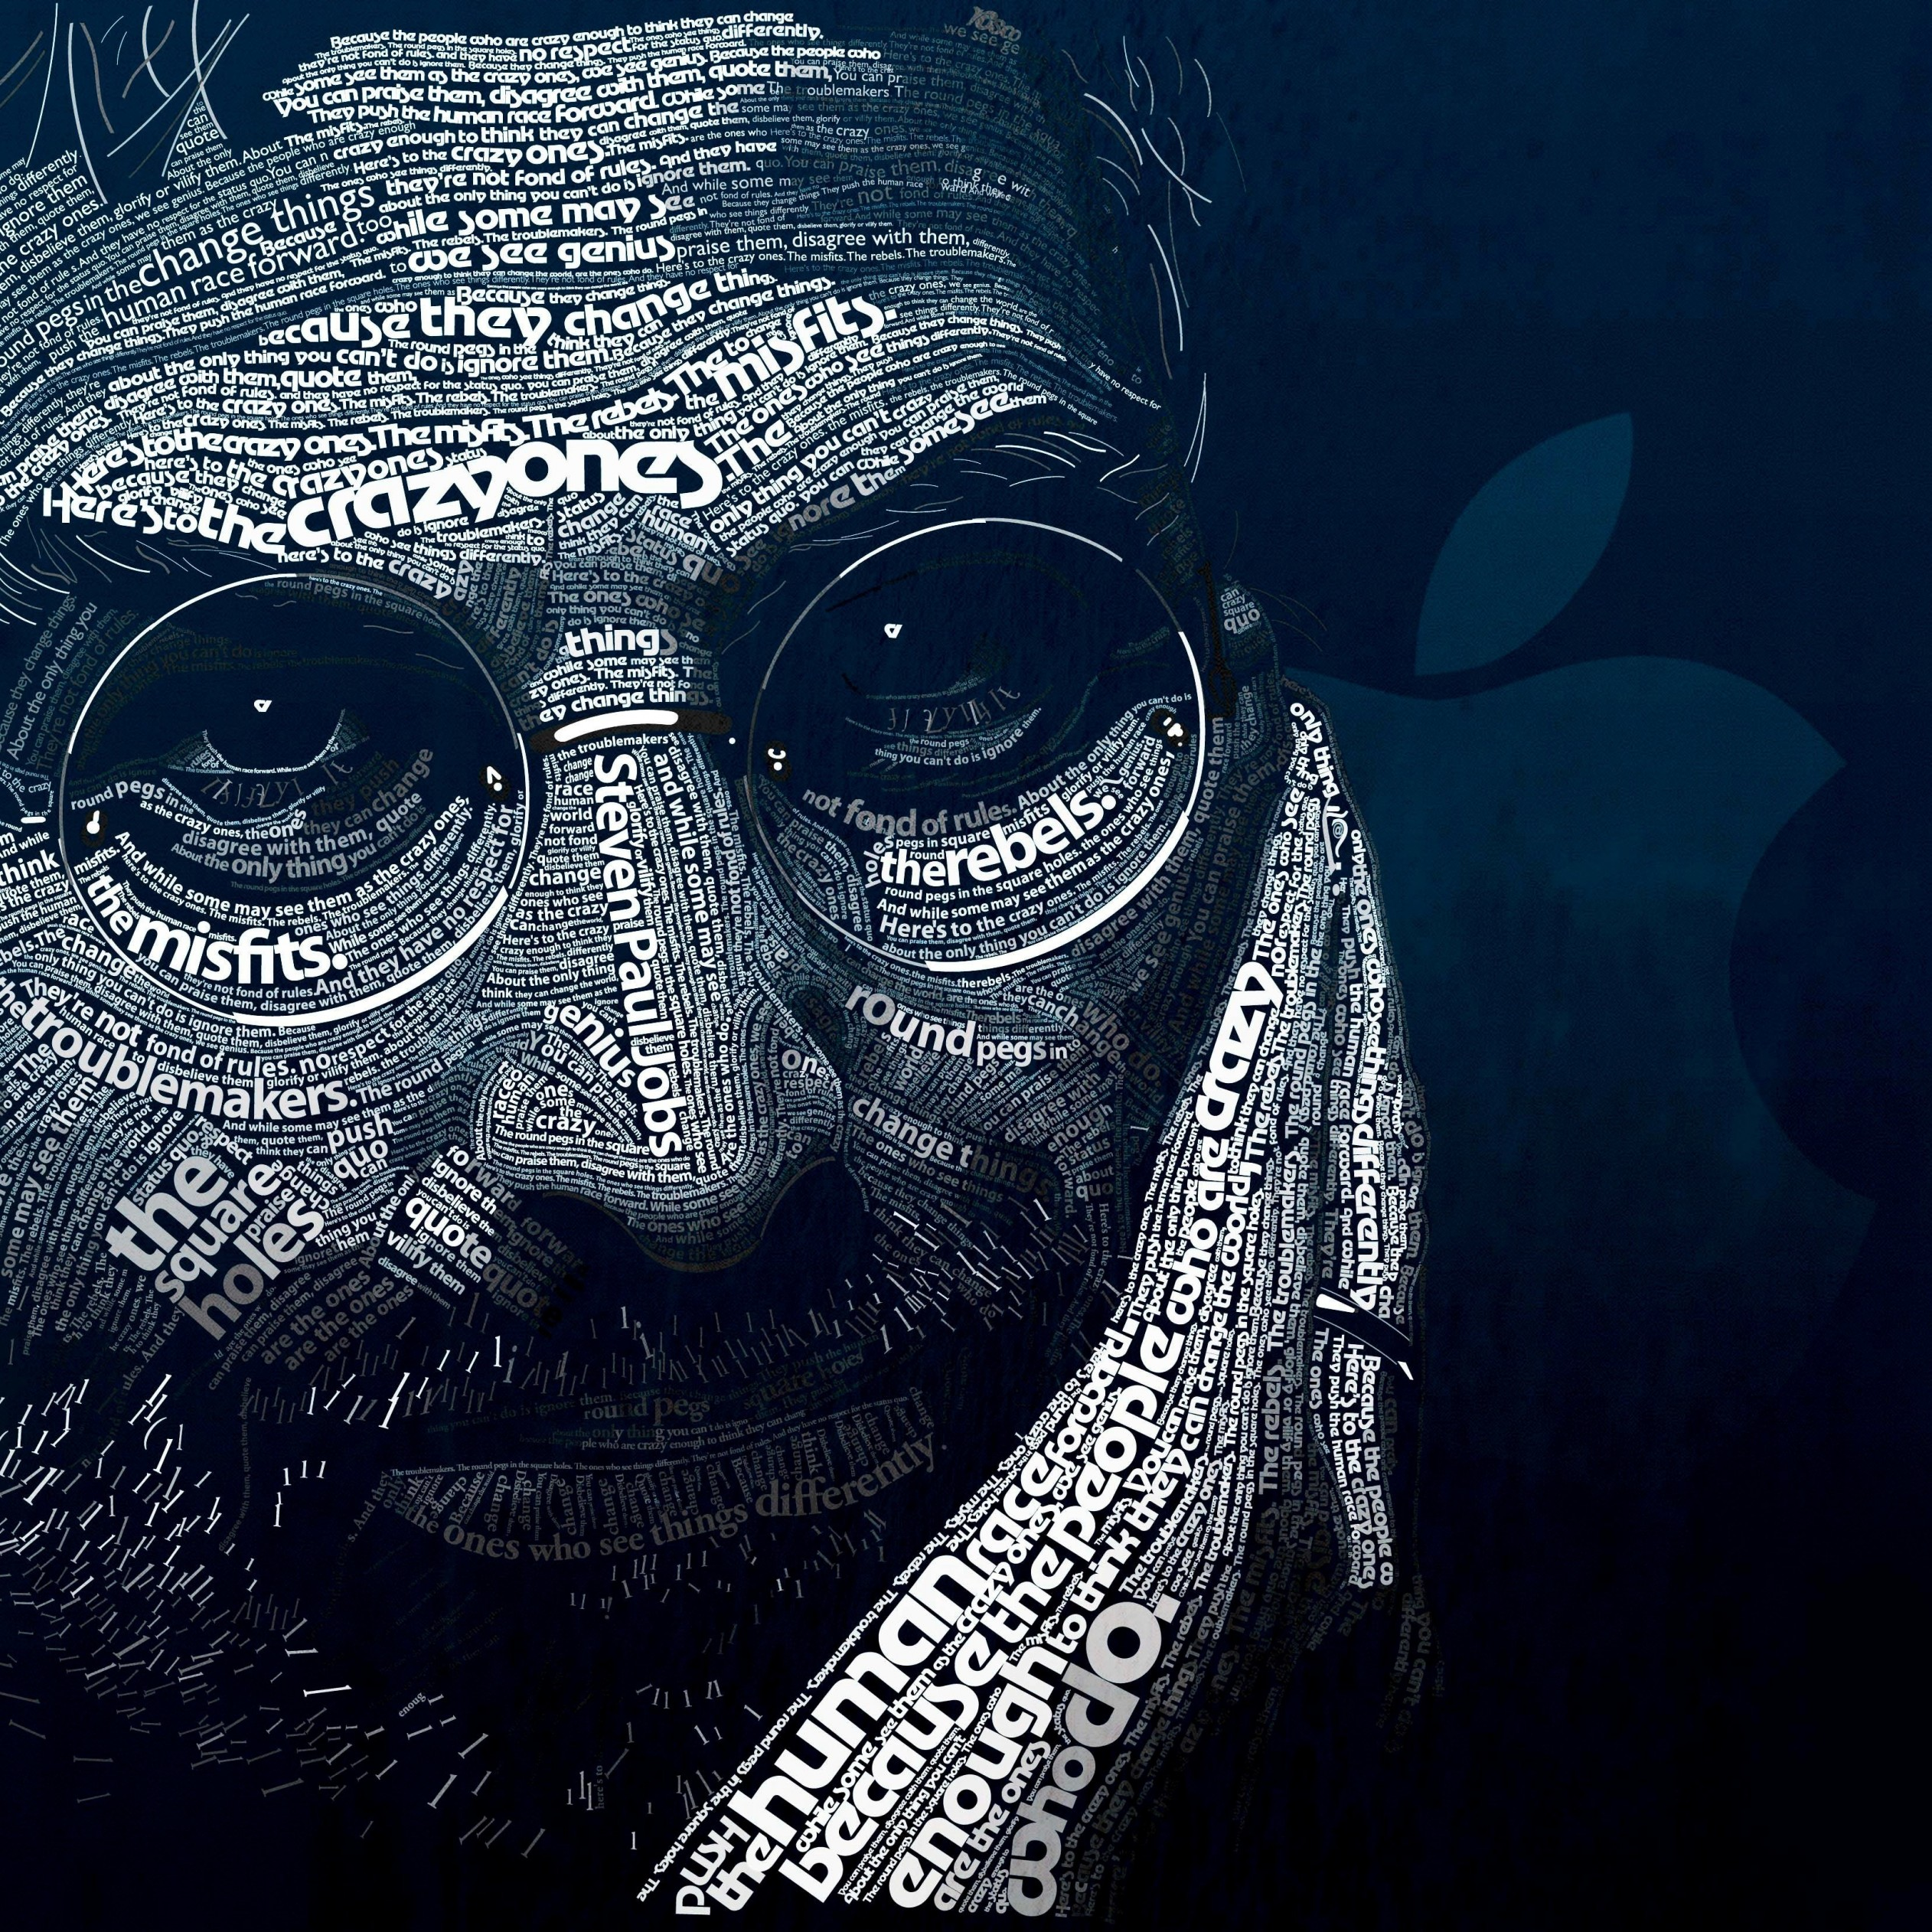 Steve Jobs Typographic Portrait Wallpaper for Apple iPad Air